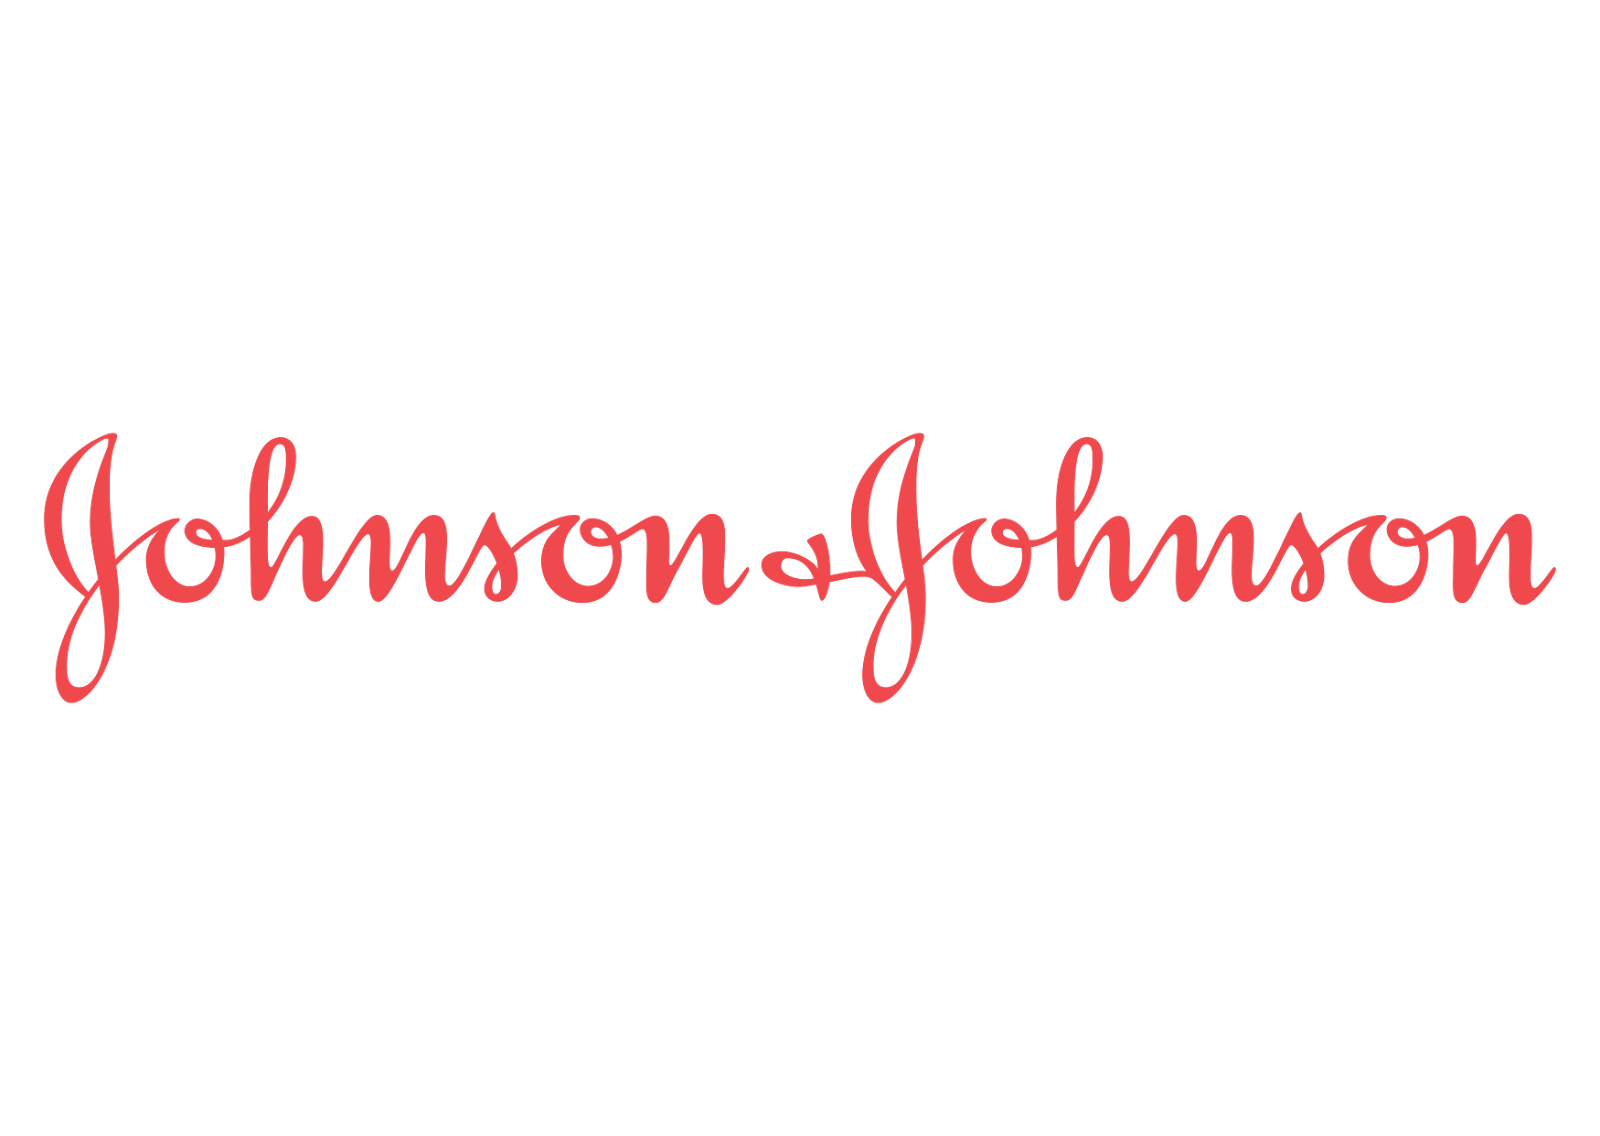 Johnson & johnson logo png transparent. What will the th